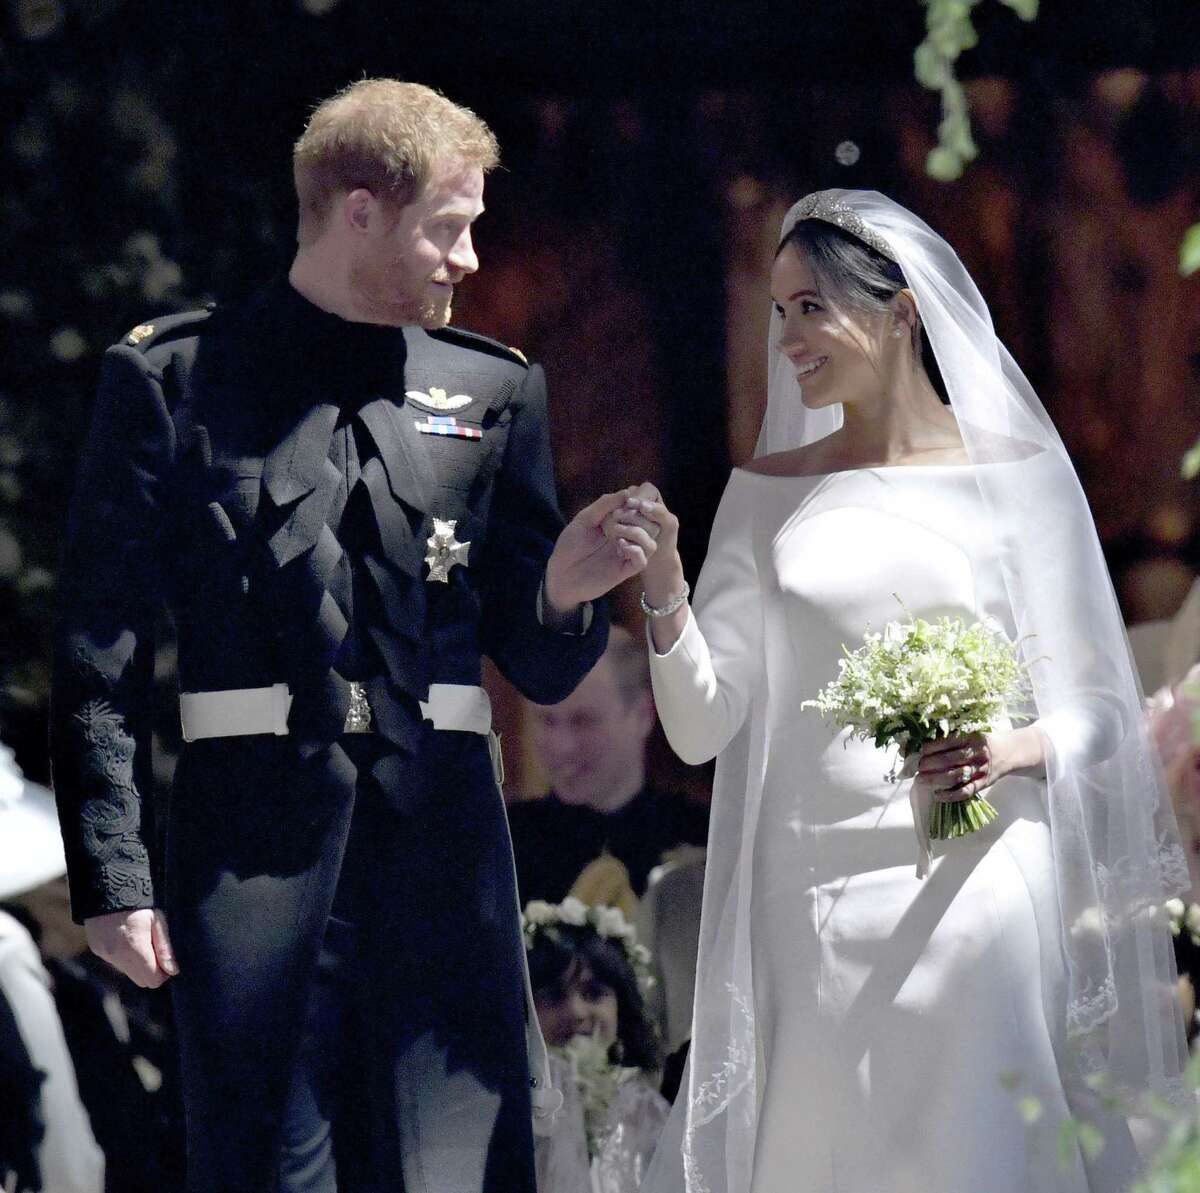 Prince Harry and Meghan Markle: During the royal wedding watched 'round the world, everyone's favorite redhead relinquished his perennial bachelor title to wed the former